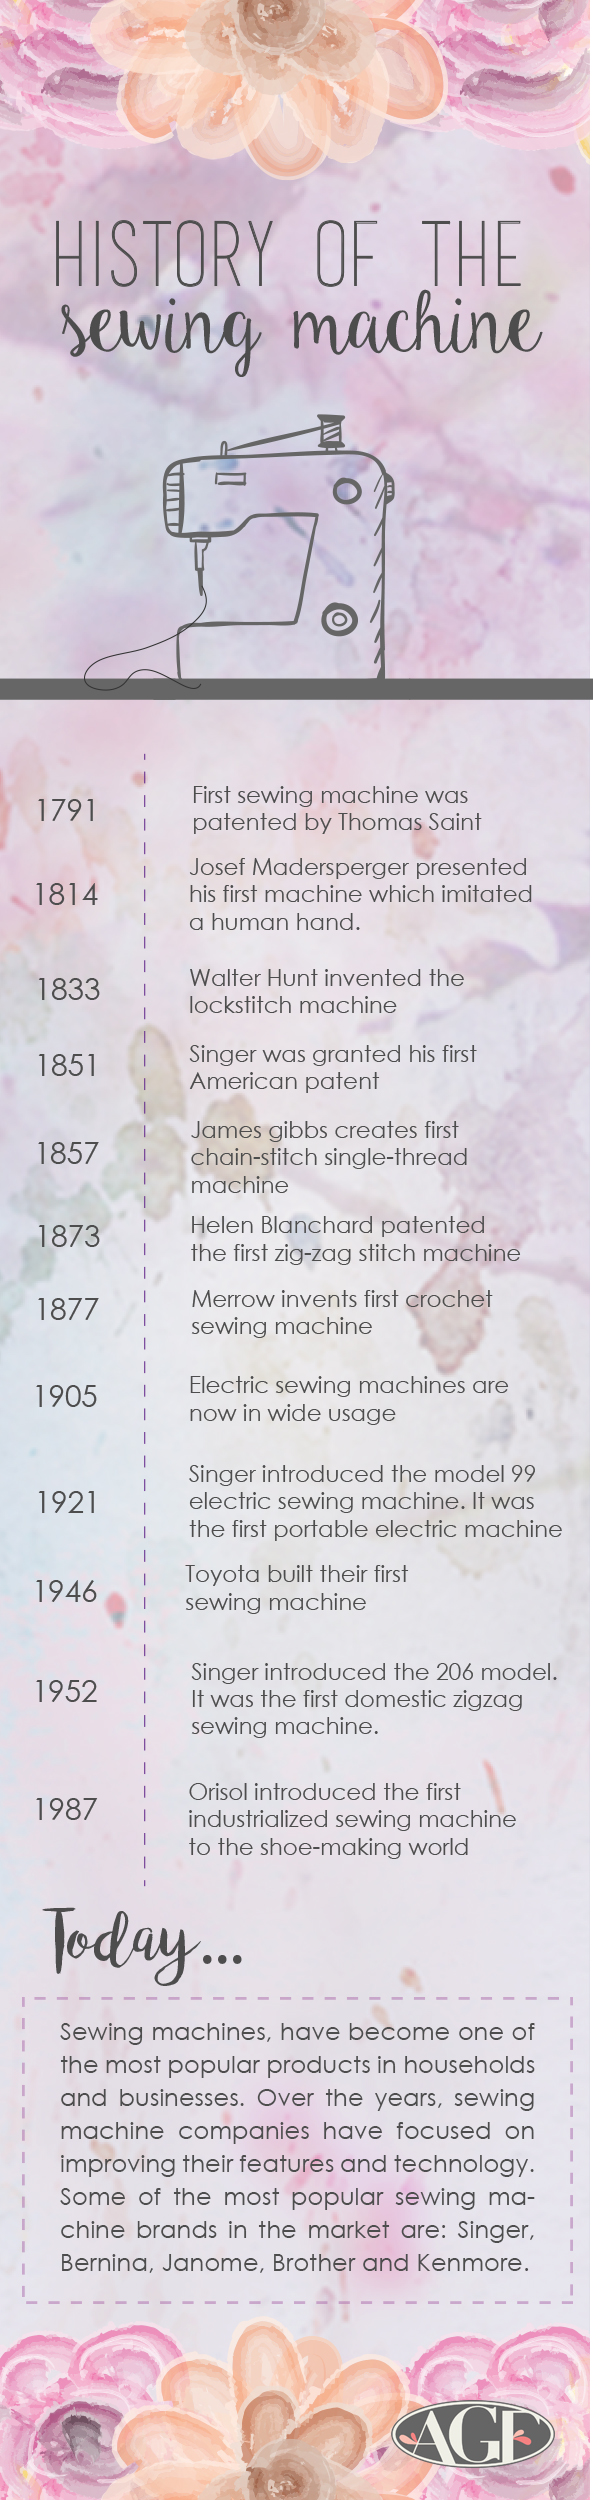 History_sewing_machine_infographic